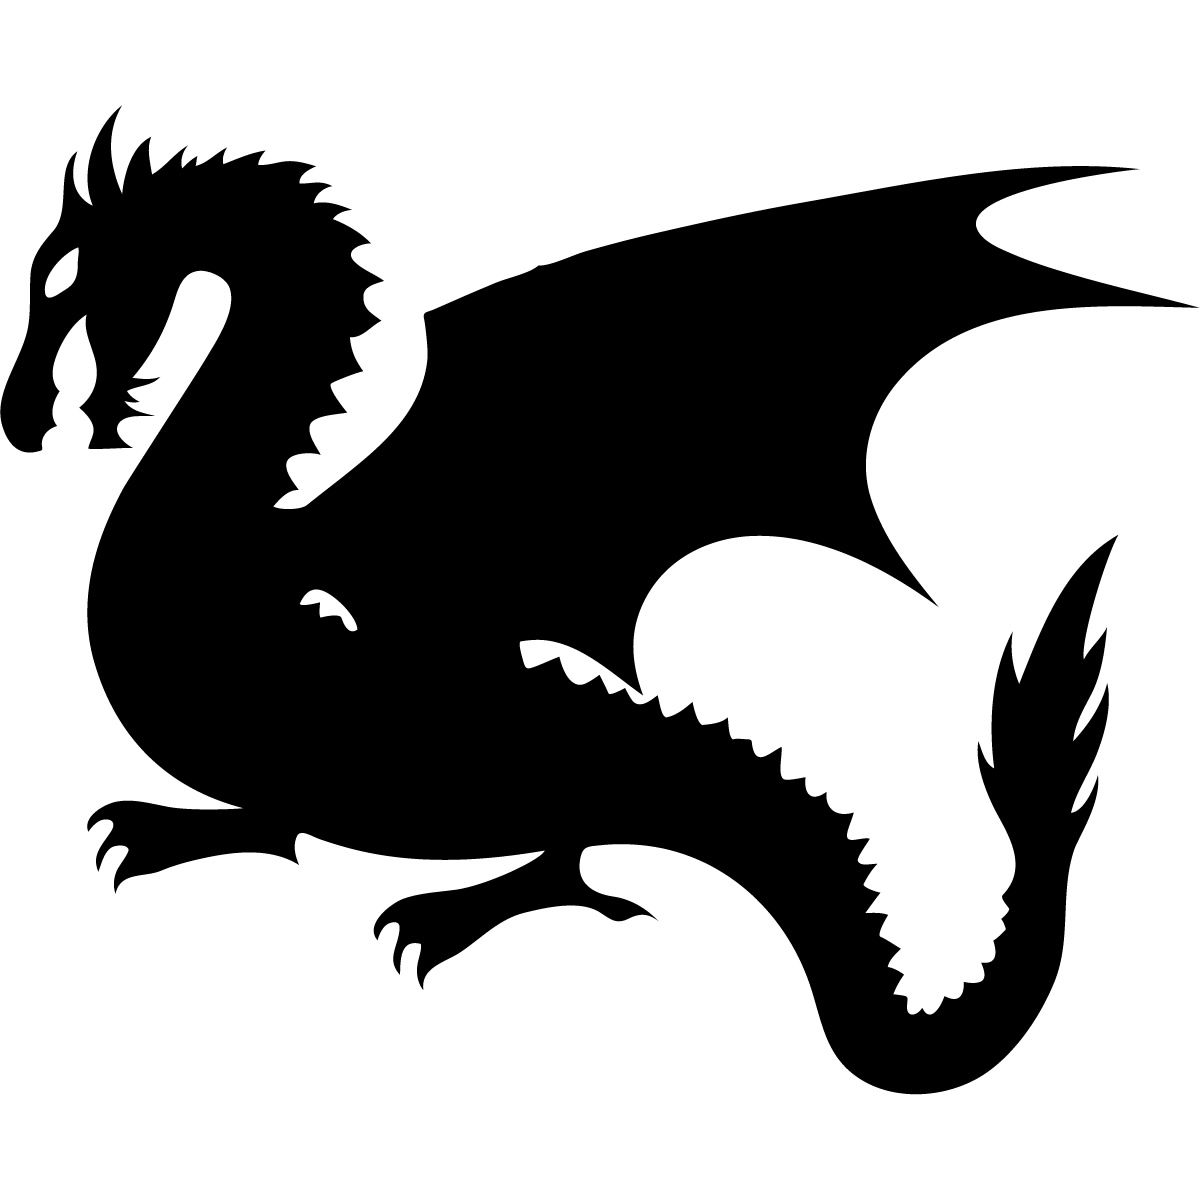 Dragon Silhouette - ClipArt Best - ClipArt Best